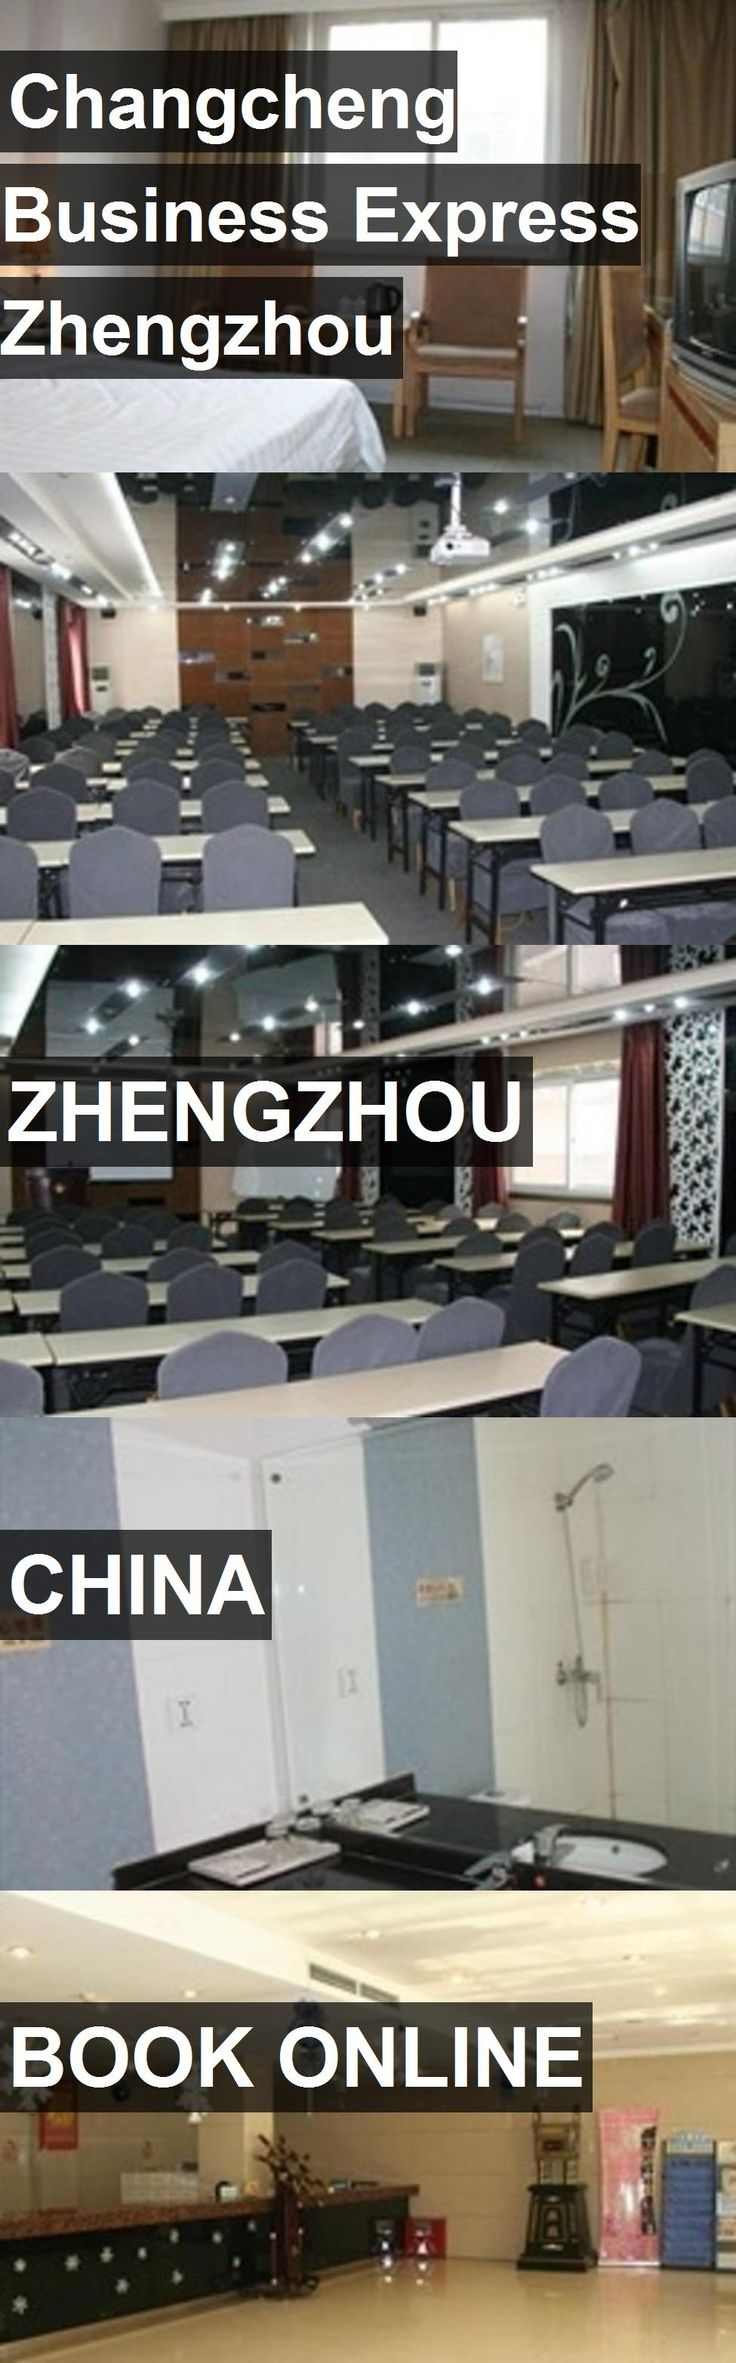 Hotel Changcheng Business Express Zhengzhou in Zhengzhou, China. For more information, photos, reviews and best prices please follow the link. #China #Zhengzhou #ChangchengBusinessExpressZhengzhou #hotel #travel #vacation